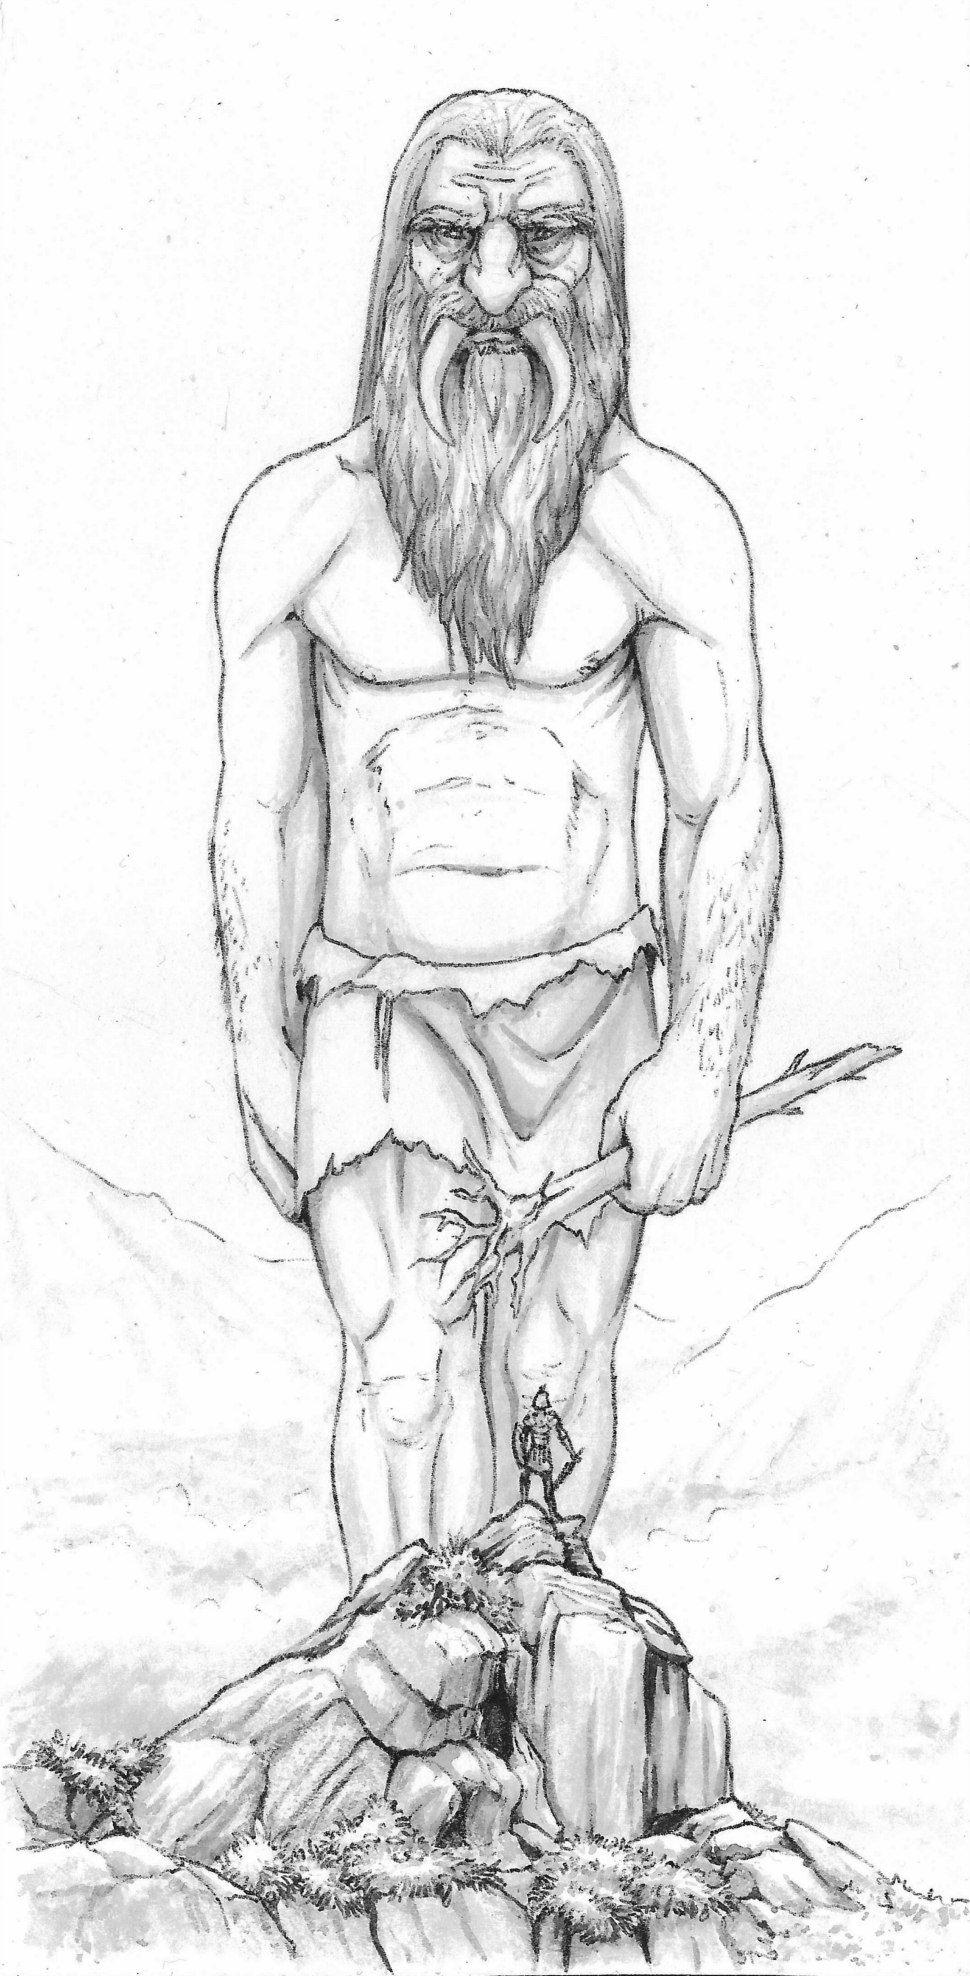 Tusked giant